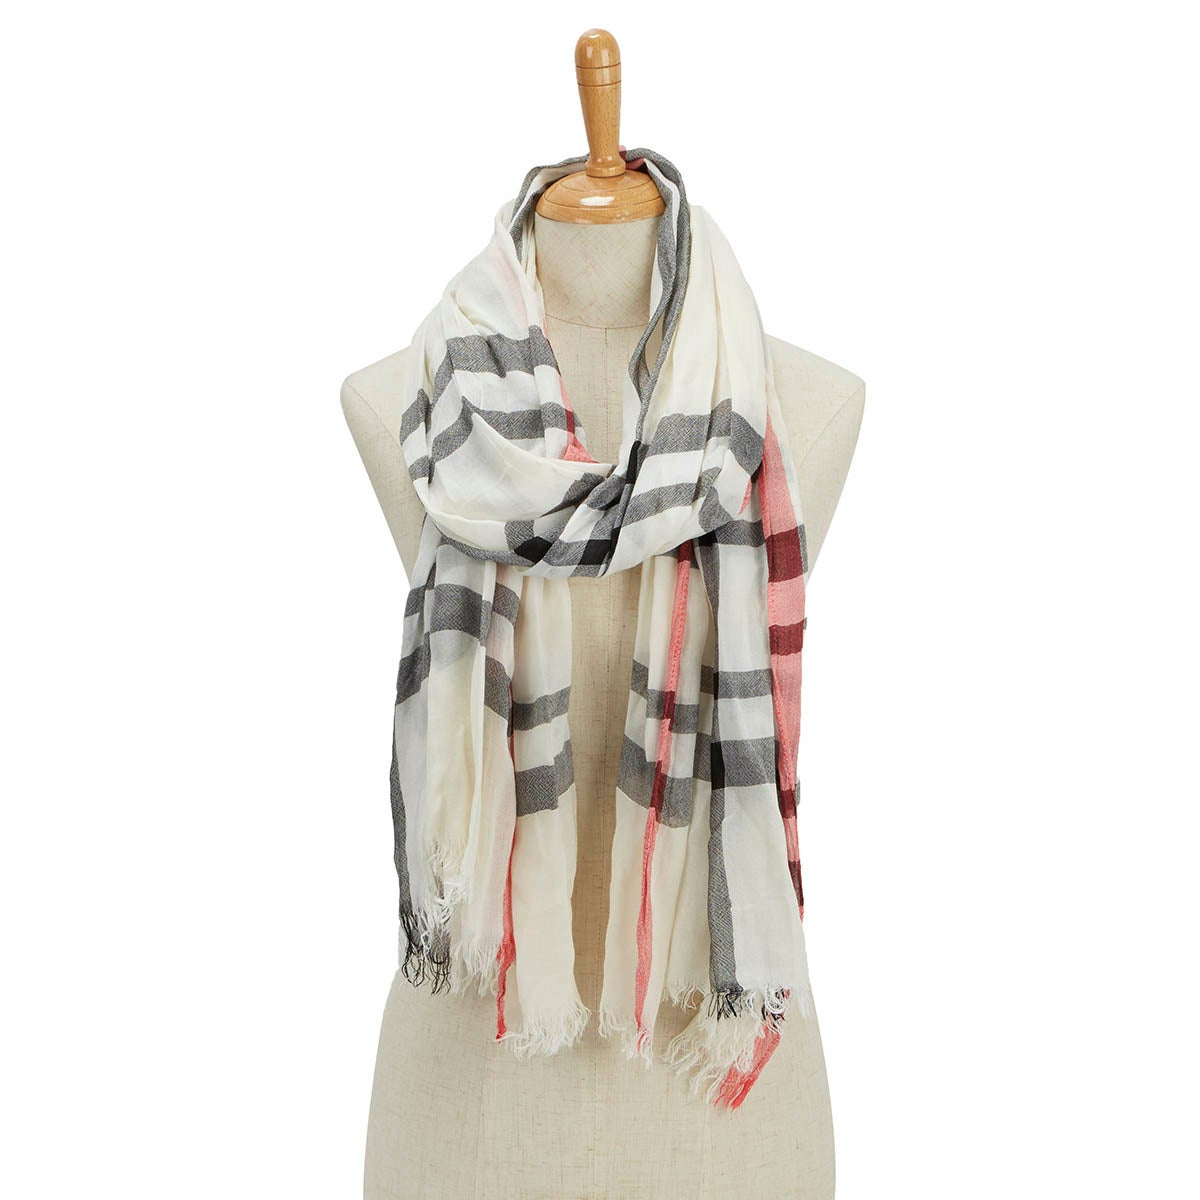 Lds Essentials Fraas Plaid cream scarf